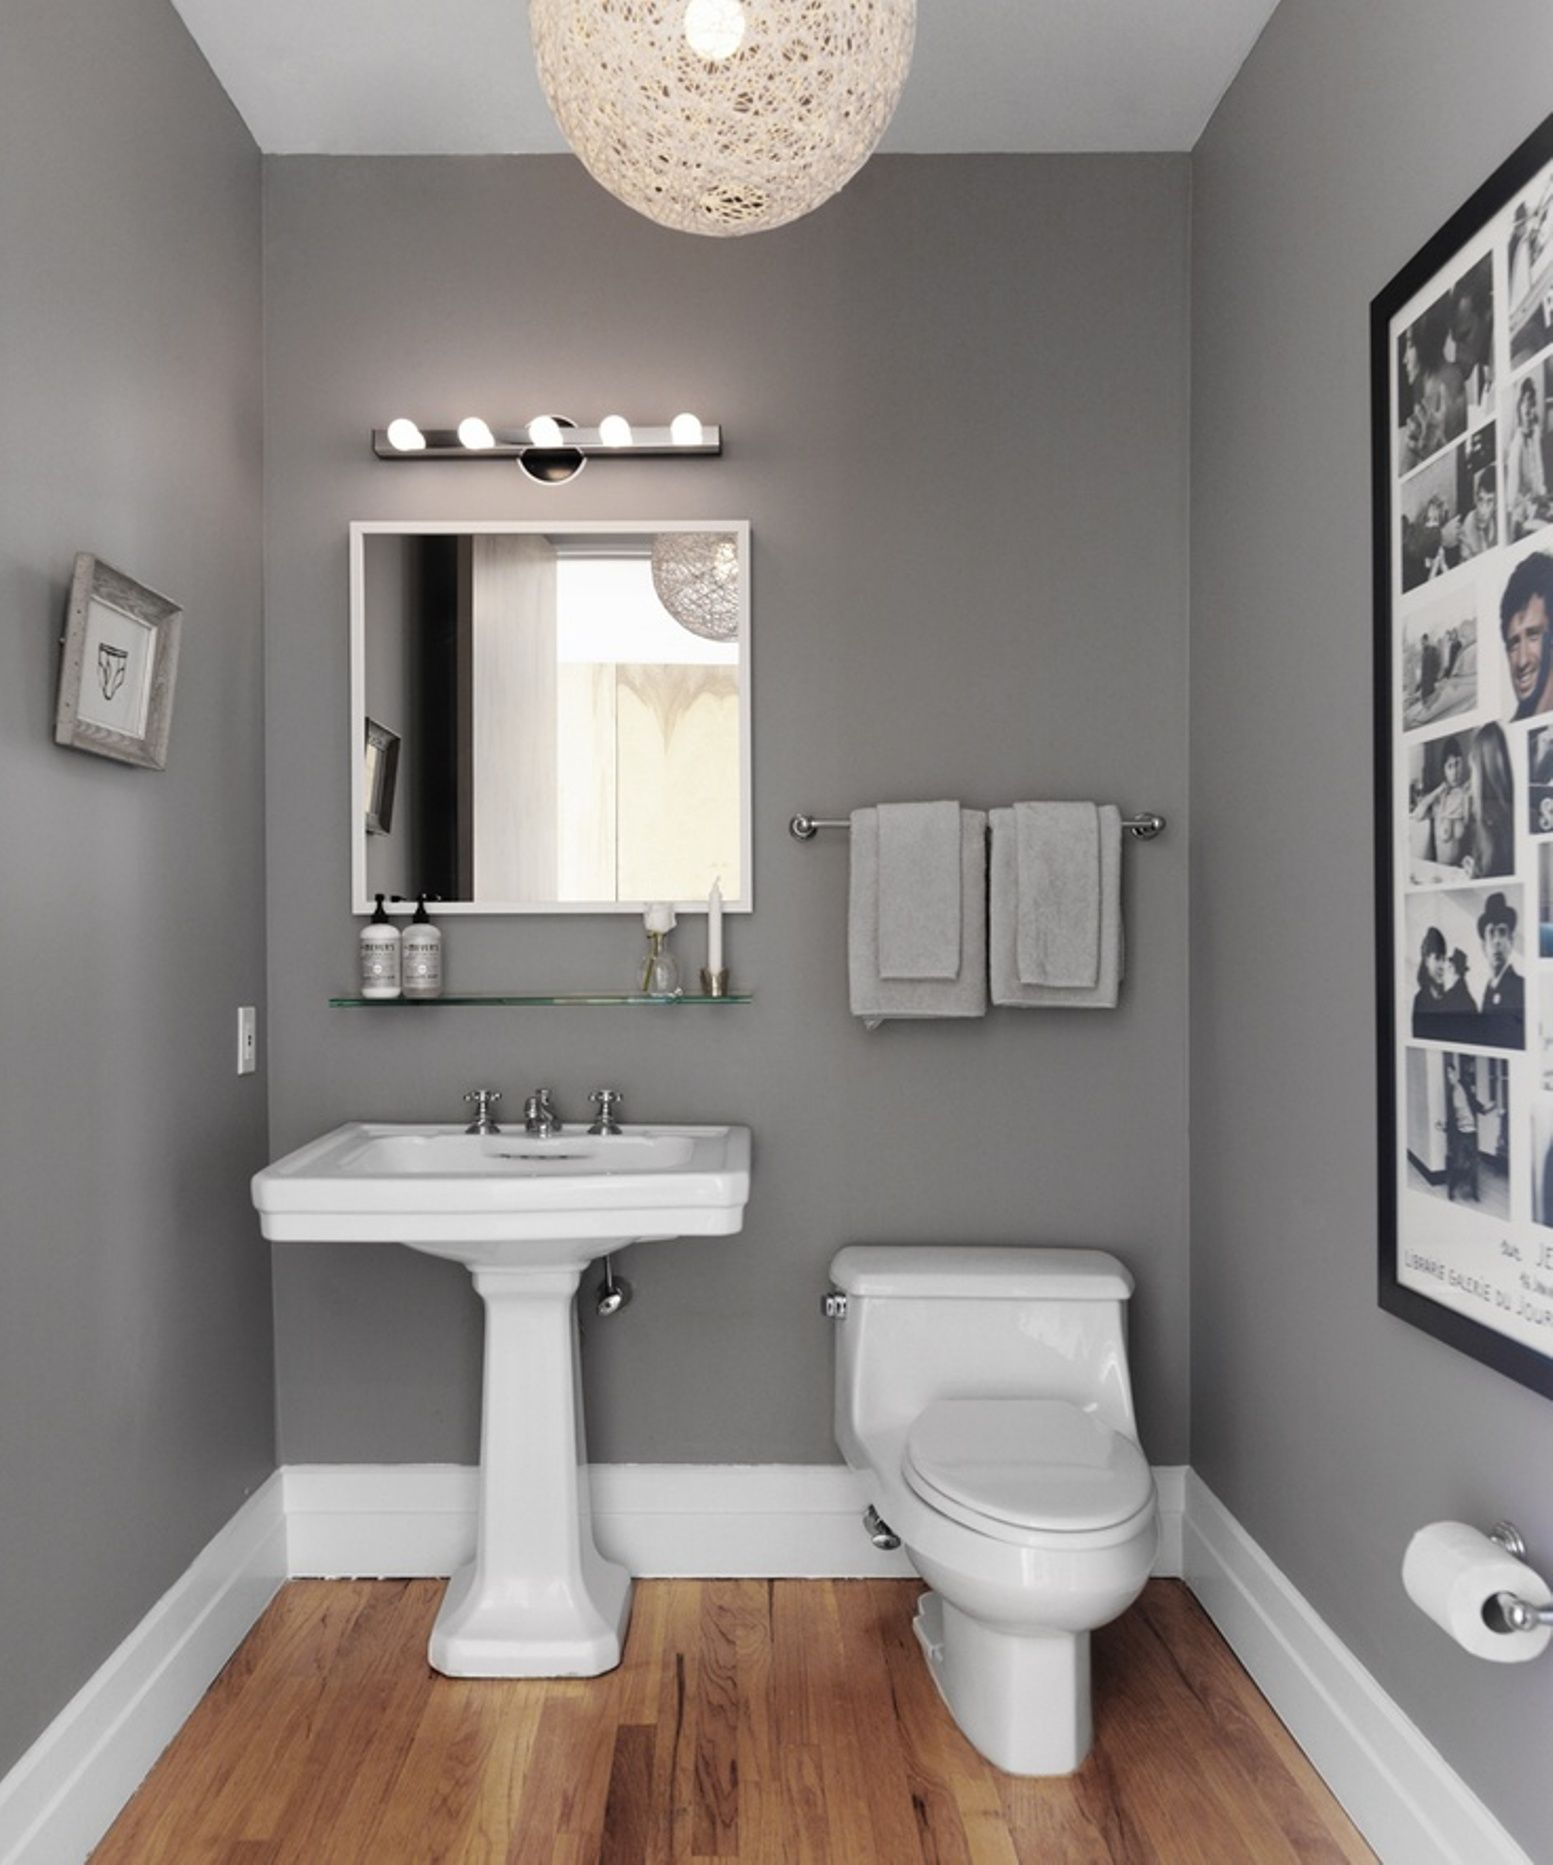 grey bathroom color ideas. Wonderful Bathroom Narrow Grey Bathroom Ideas With White Bath Fixtures   Inspiration Color O